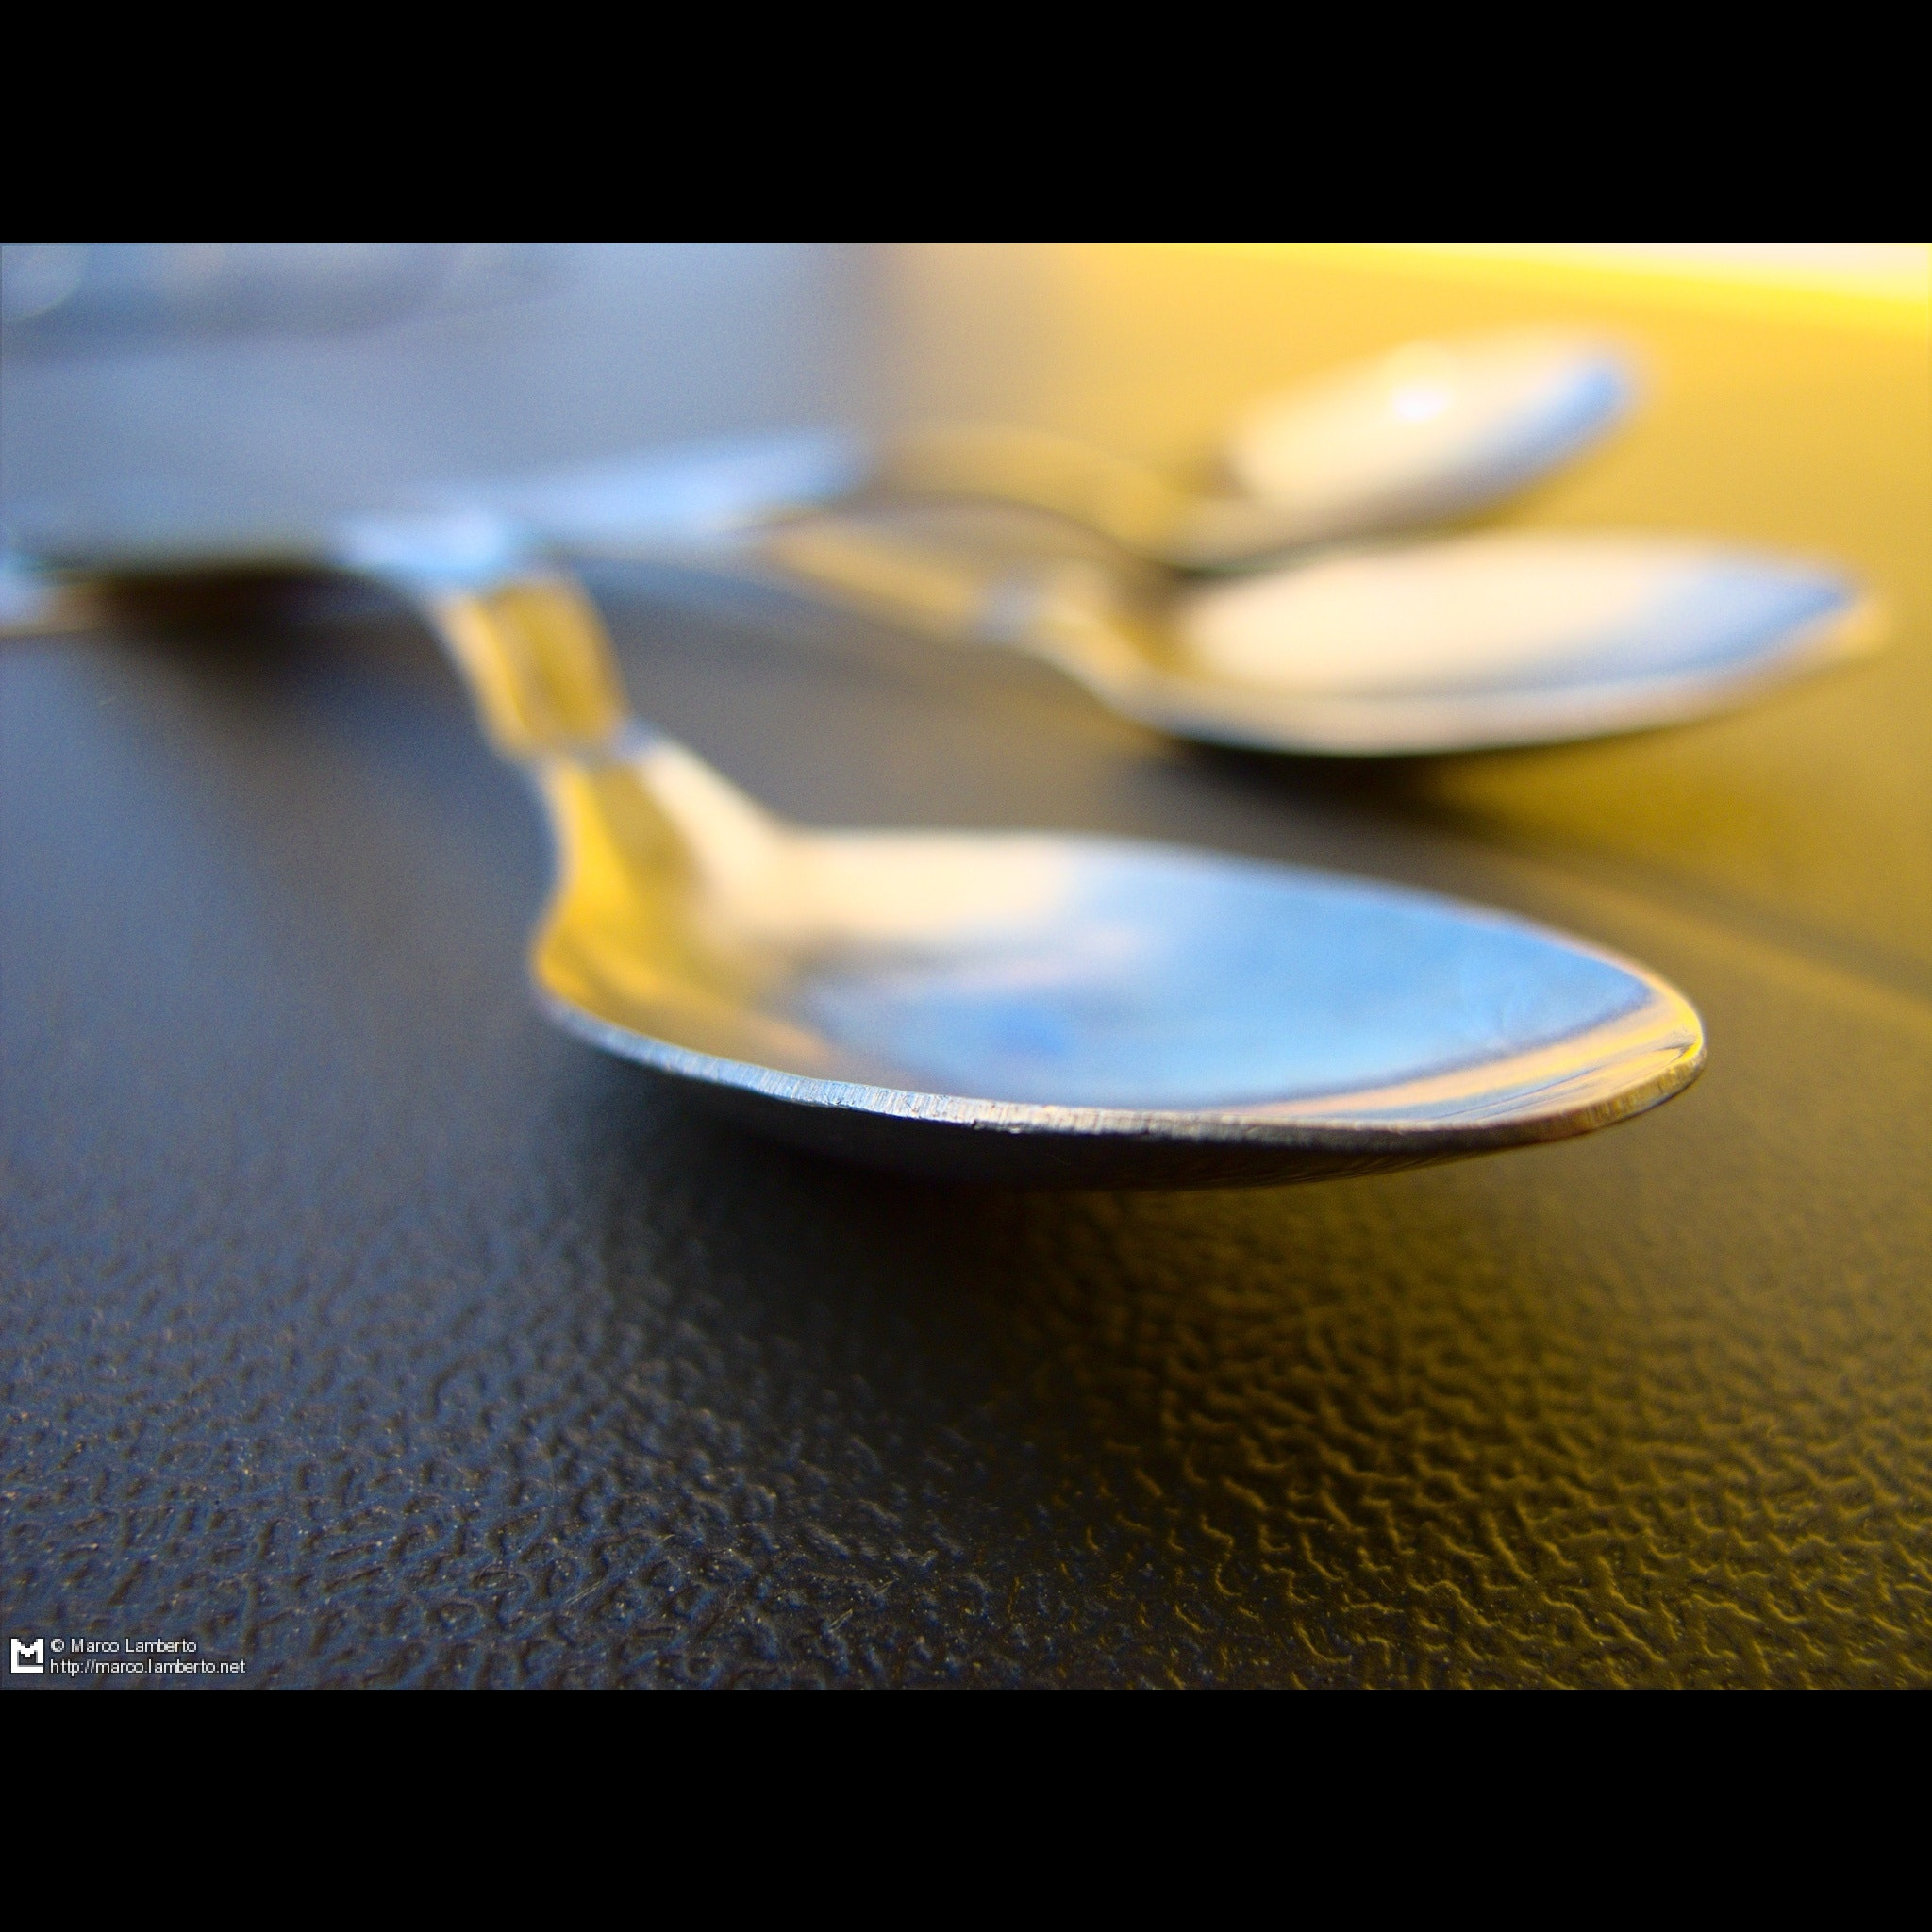 Photograph Spoons - IMG_4459 by Marco Lamberto on 500px